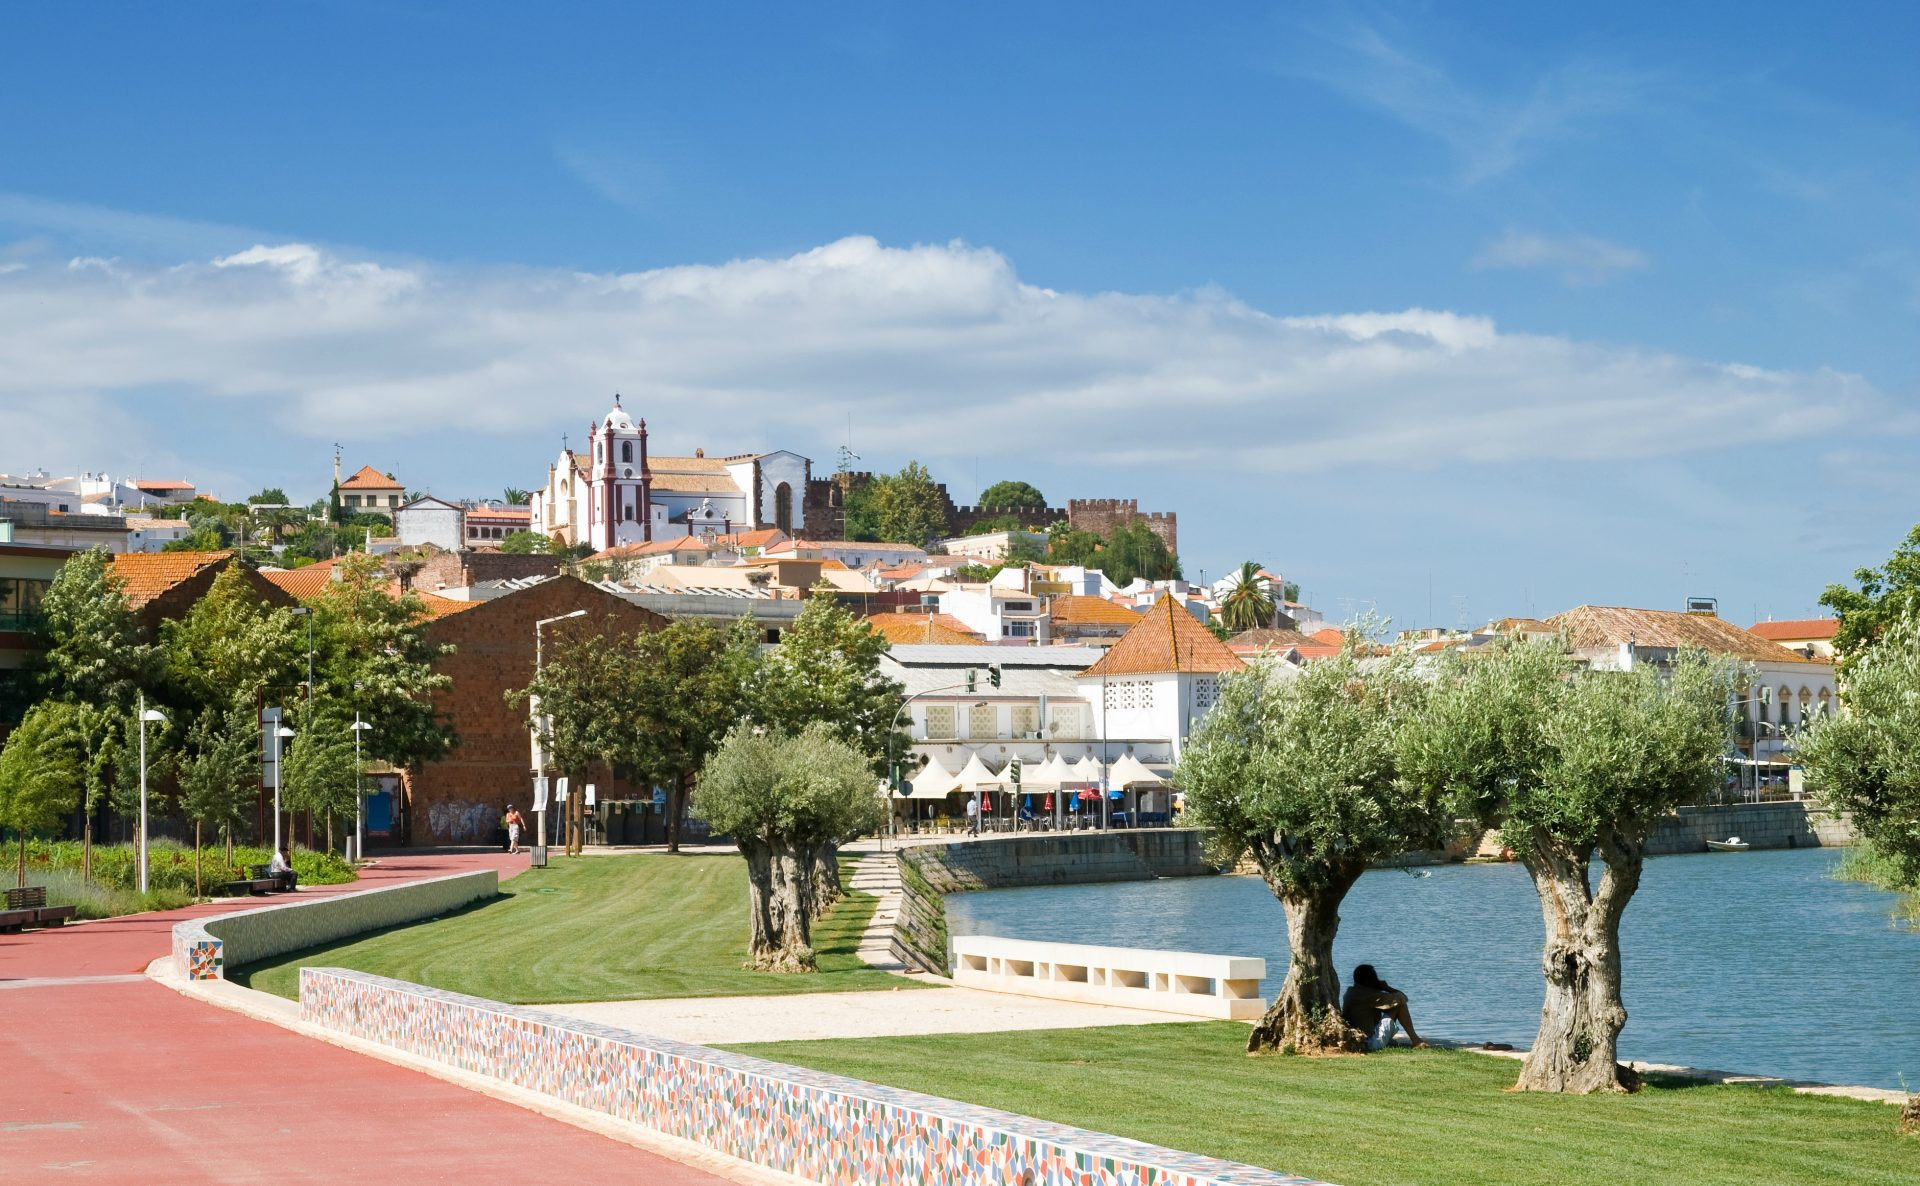 Portugal-Posts-Algarve-towns-River-Arade